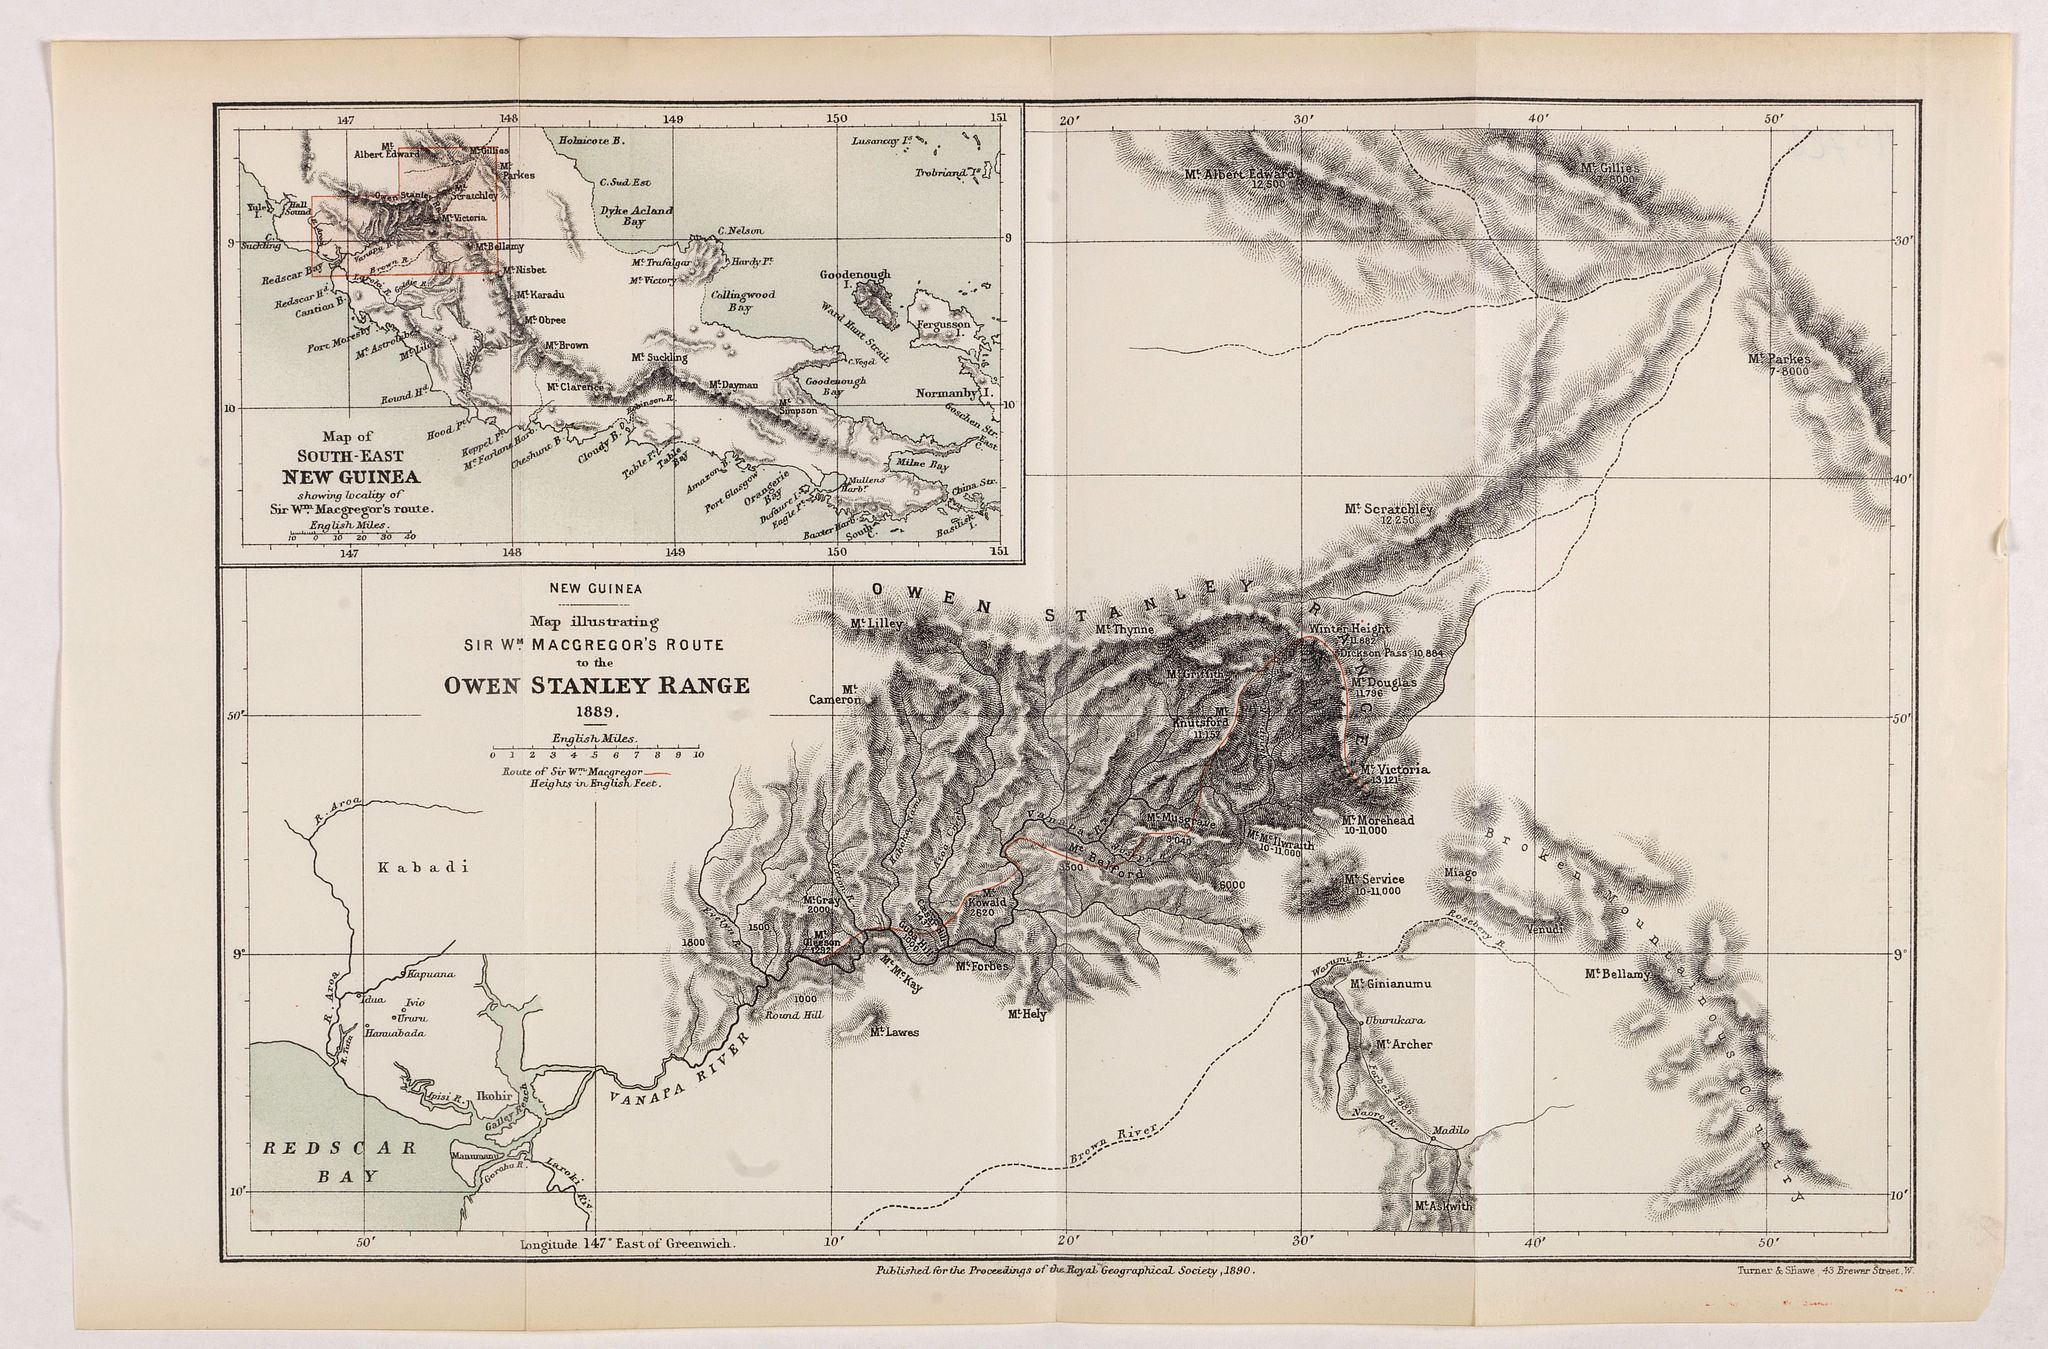 ROYAL GEOGRAPHICAL SOCIETY -  New Guinea. Map illustrating Sir. w. Macgregor's route to the Owen Stanley Range 1889.